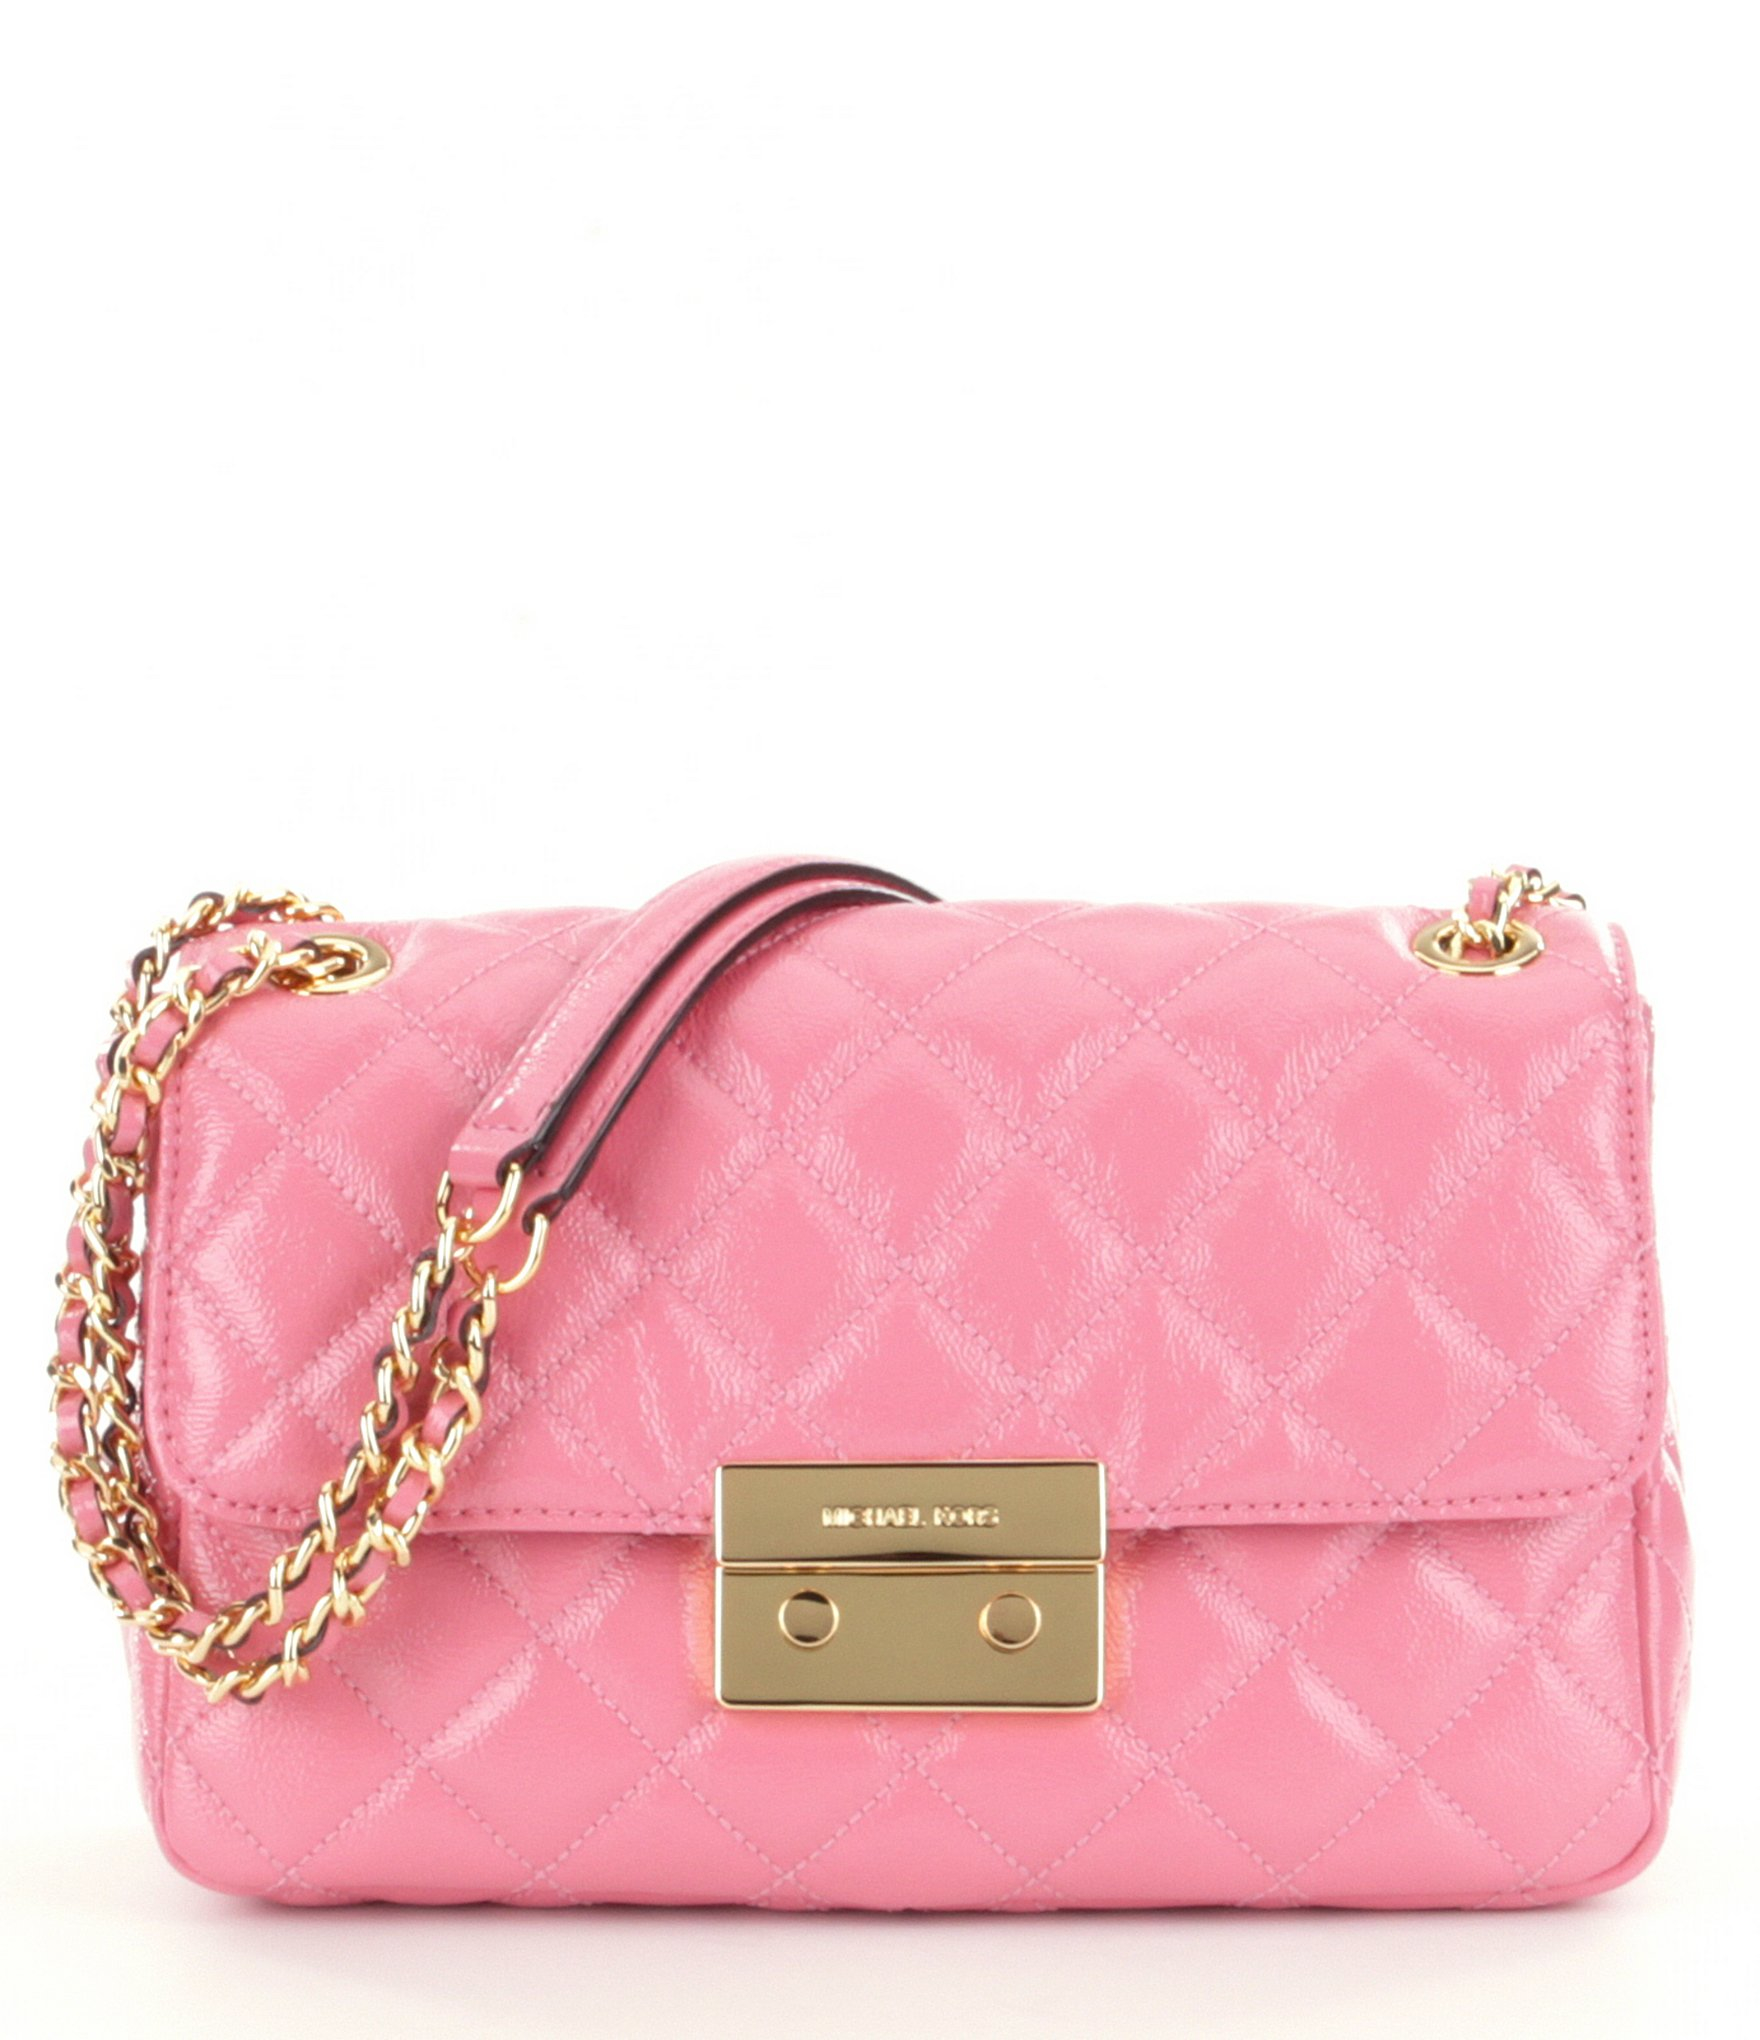 e741b8fe59bd Gallery. Previously sold at: Dillard's · Women's Michael By Michael Kors  Sloan Women's Michael Kors Quilted Bag